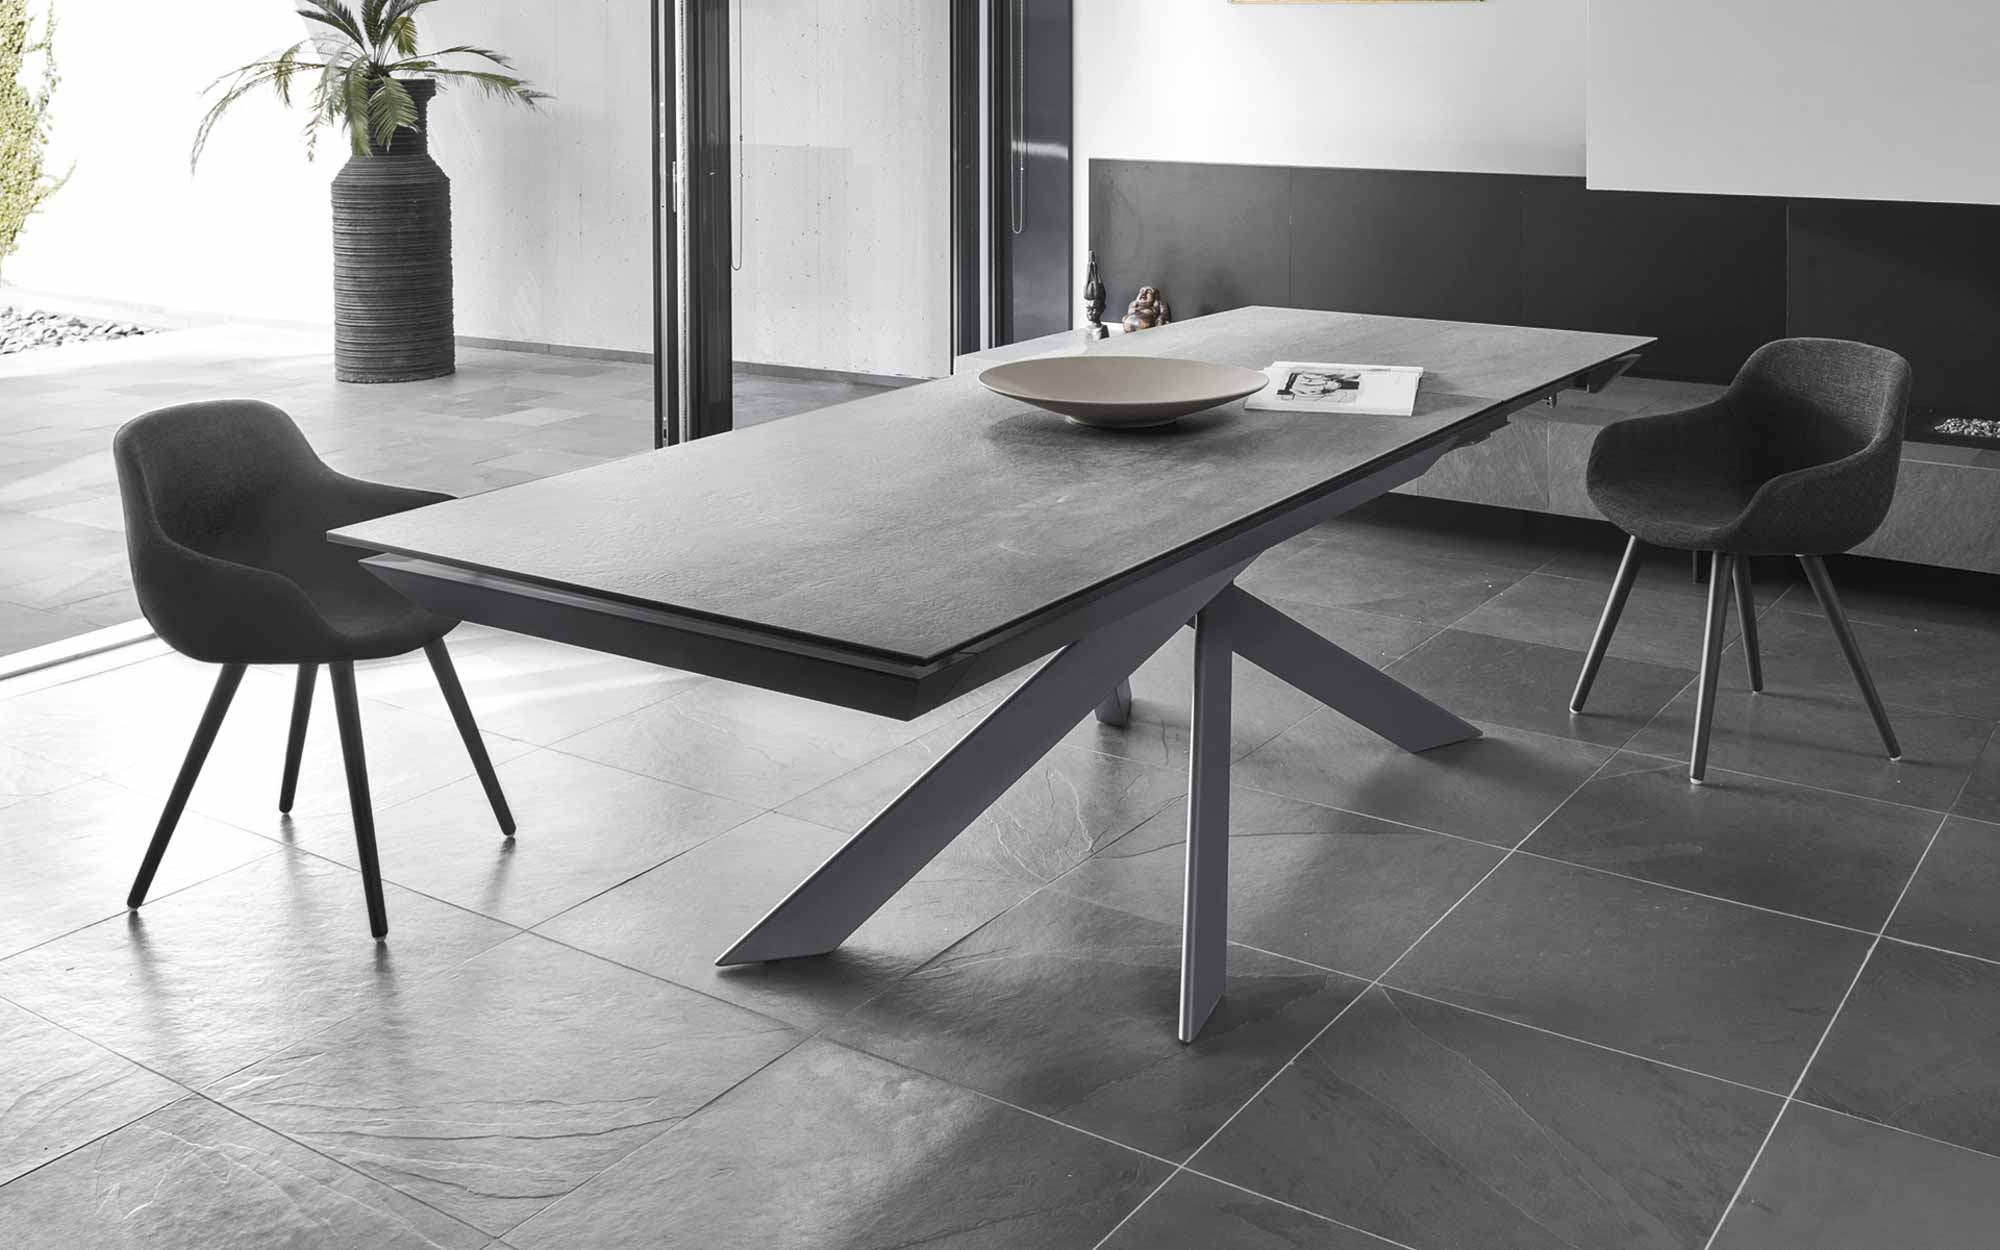 Extending table Eclisse  from Calligaris in Màxim Confort Mallorca